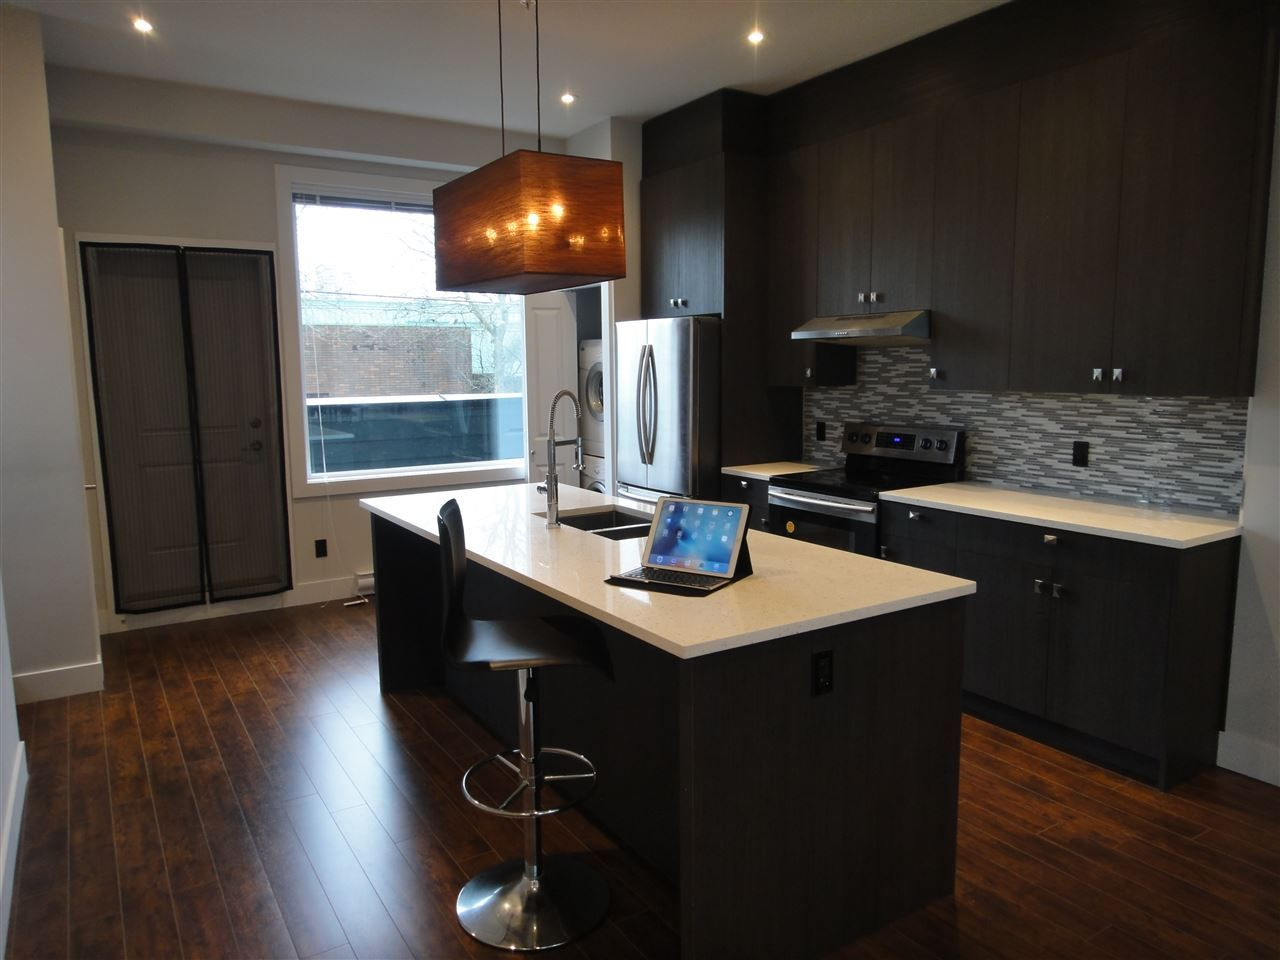 """Photo 8: Photos: C 6688 DUFFERIN Avenue in Burnaby: Upper Deer Lake Townhouse for sale in """"DUFFERIN EIGHT TOWNHOMES"""" (Burnaby South)  : MLS®# R2027335"""